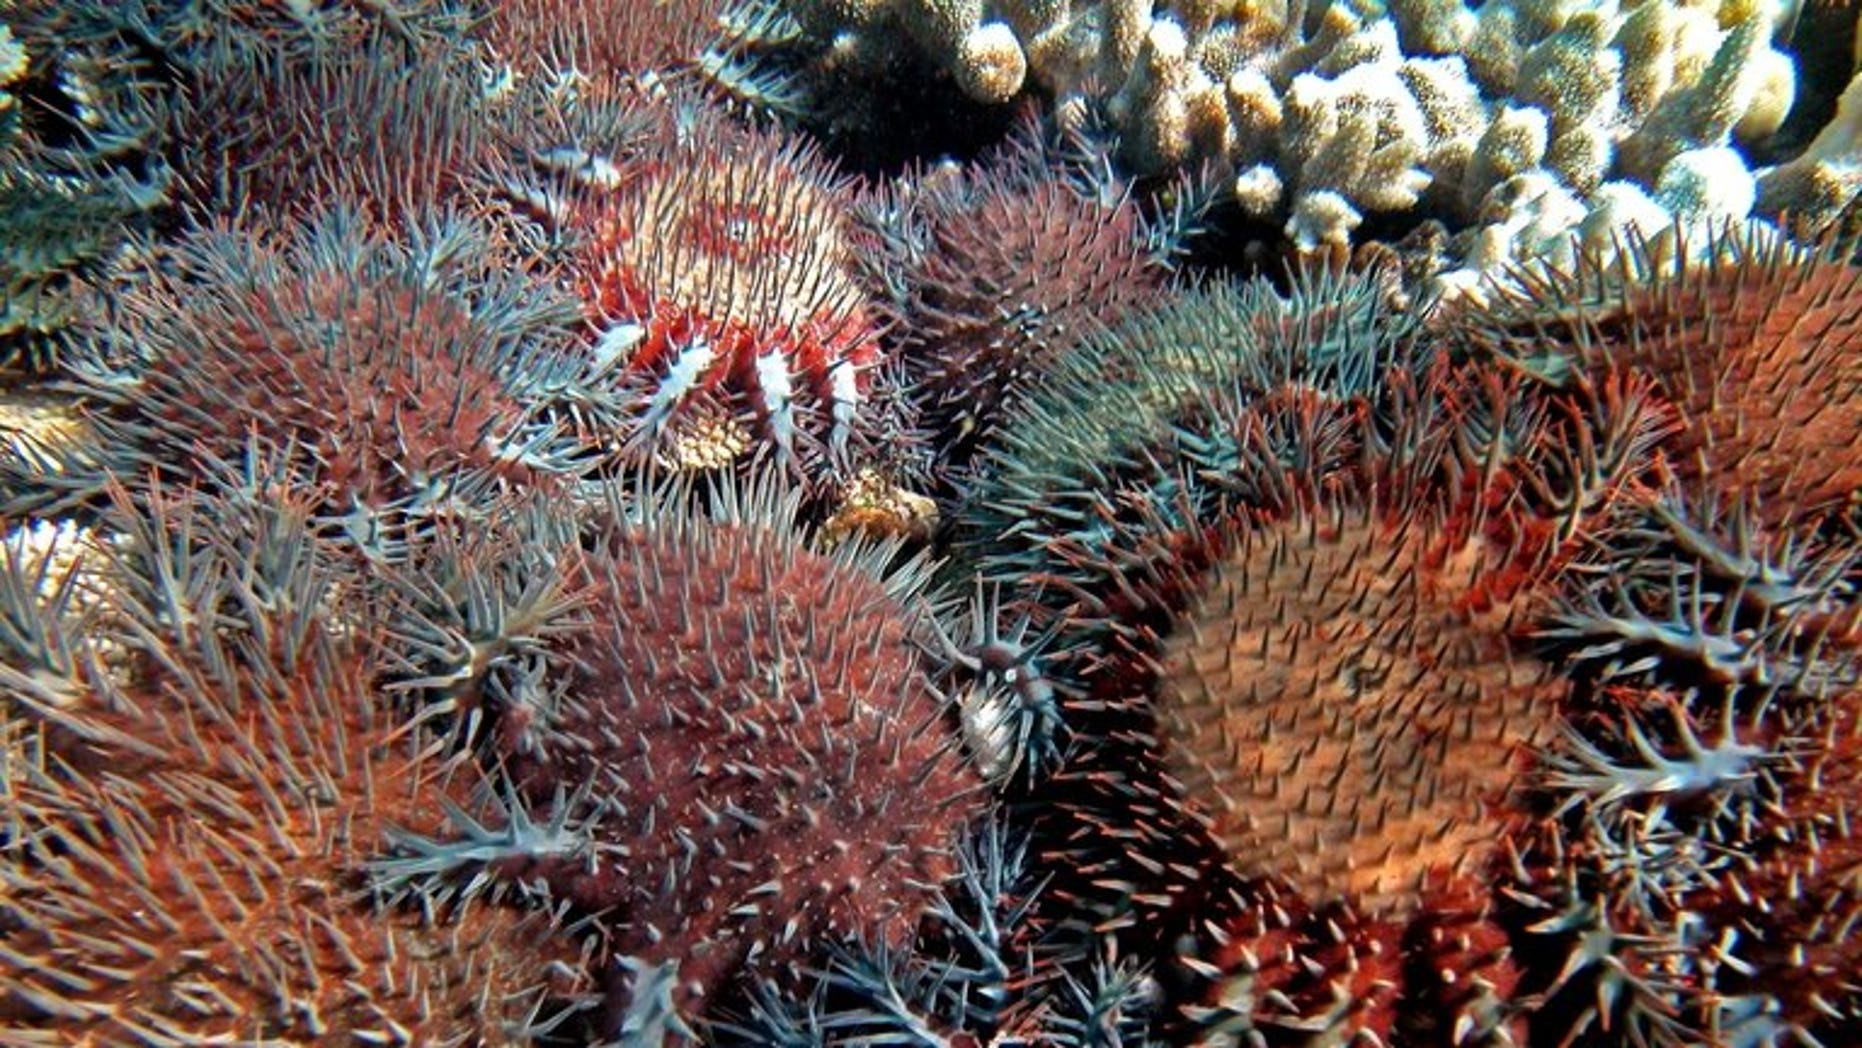 File photo of coral-eating starfish on Australia's Great Barrier Reef, the scourge of which has been partly blamed on climate change. Australia's new conservative government on Thursday abolished an independent climate change commission set up by the previous Labor administration, as part of its plans to streamline bureaucracy.